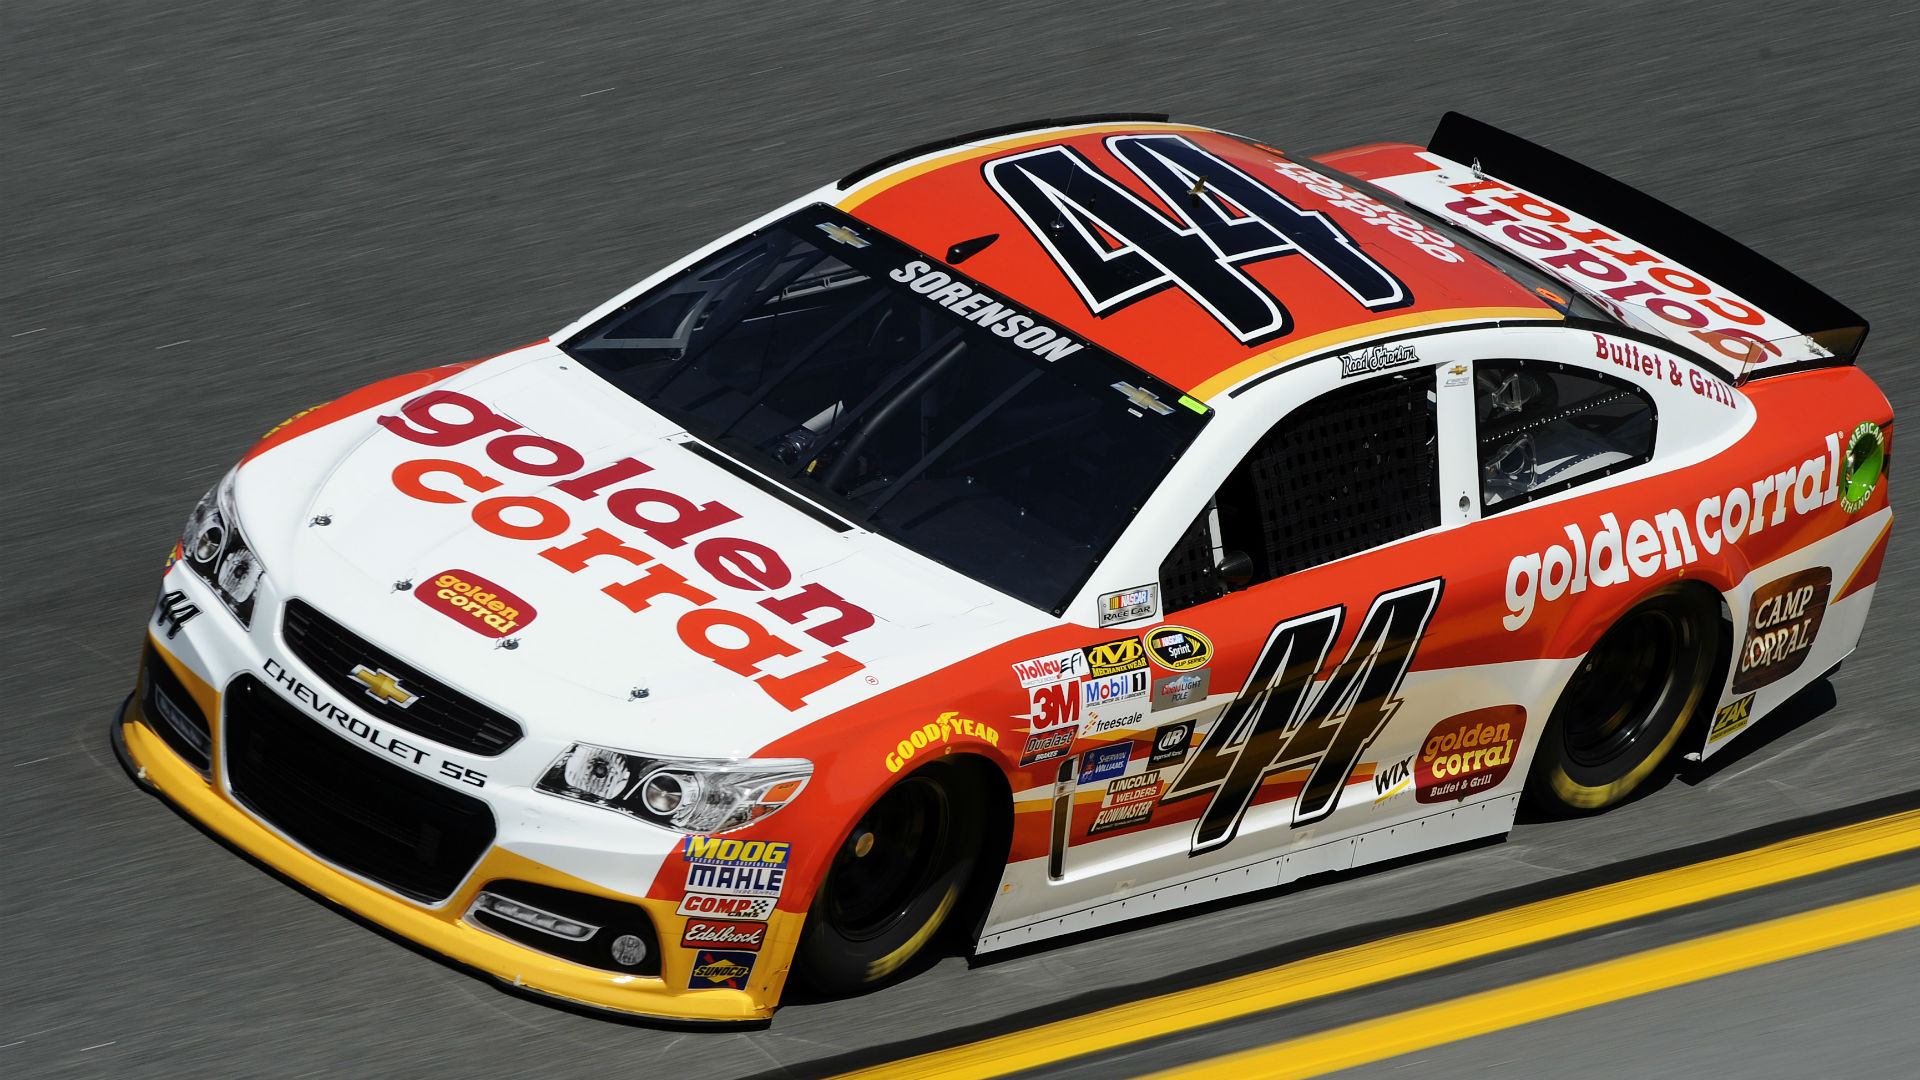 44-car-02272015-US-News-Getty-FTR